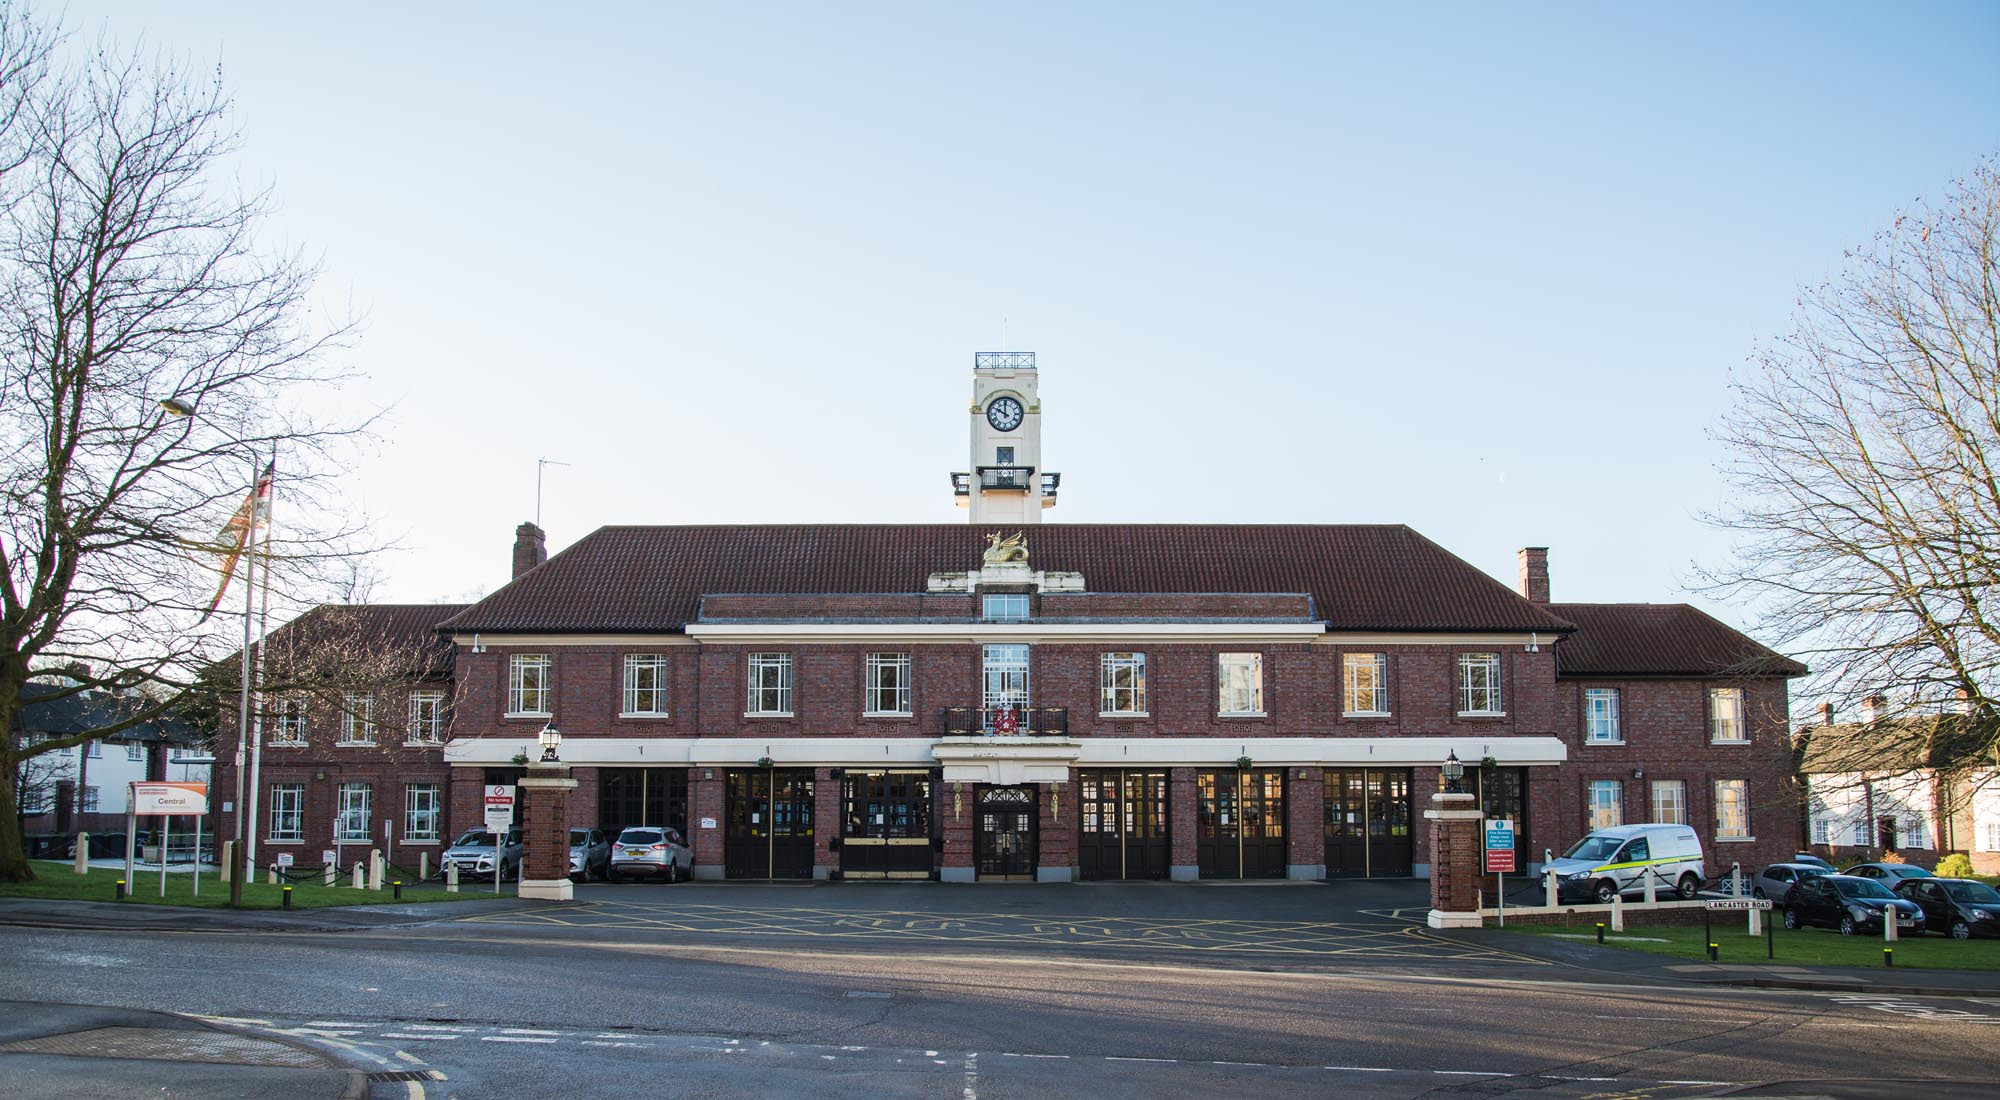 The Central Fire Station as it looks today -